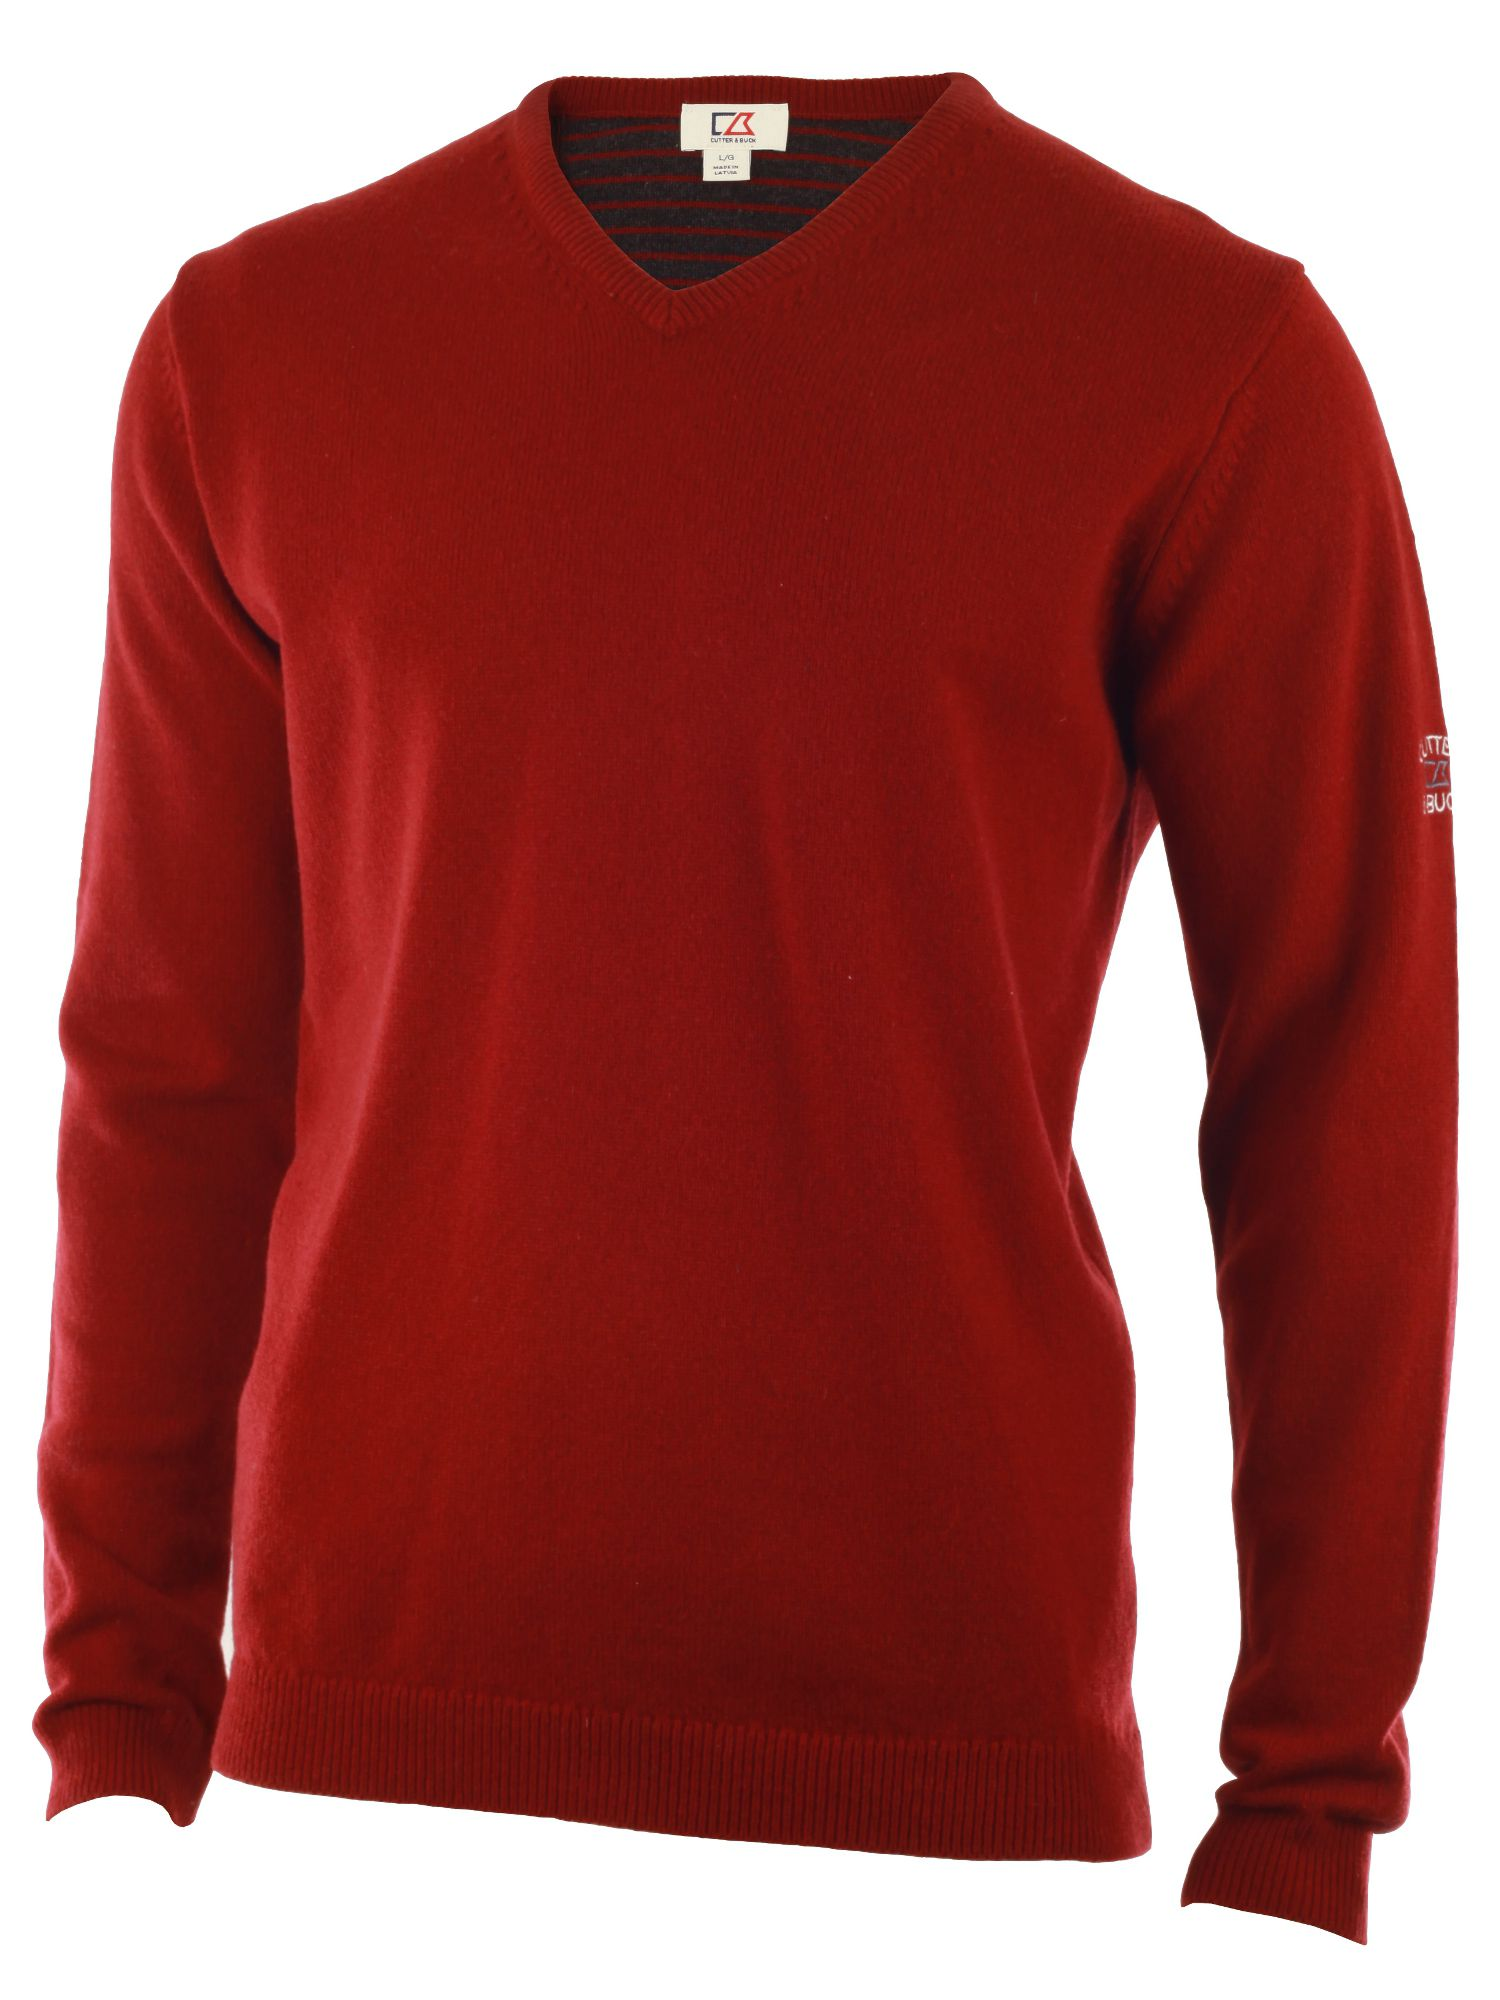 Cutter and Buck Men's Cutter and Buck Lambswool v neck sweater, Wine